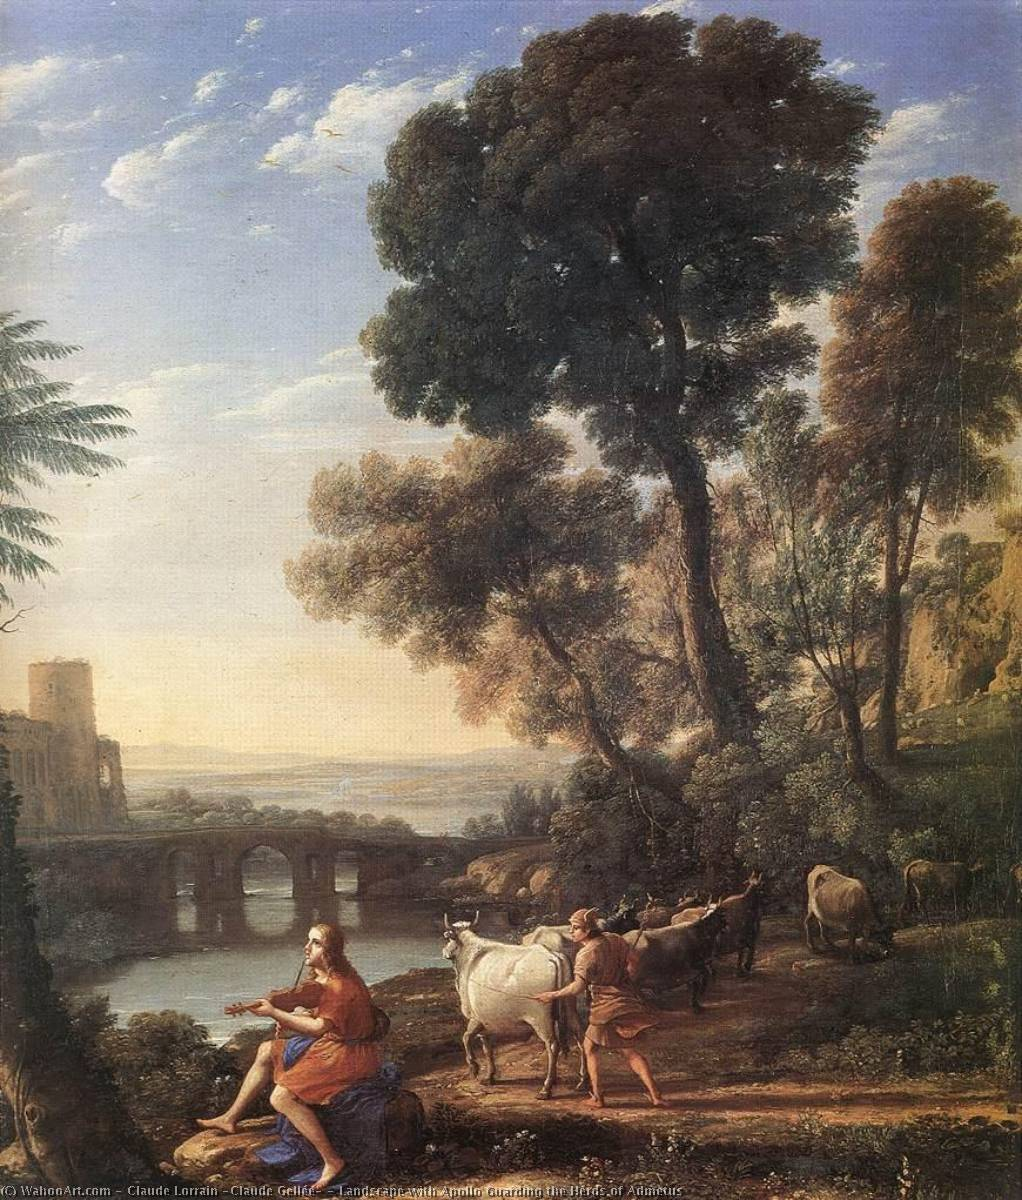 Landscape with Apollo Guarding the Herds of Admetus, 1645 by Claude Lorrain (Claude Gellée) (1600-1682) | Reproductions Claude Lorrain (Claude Gellée) | WahooArt.com